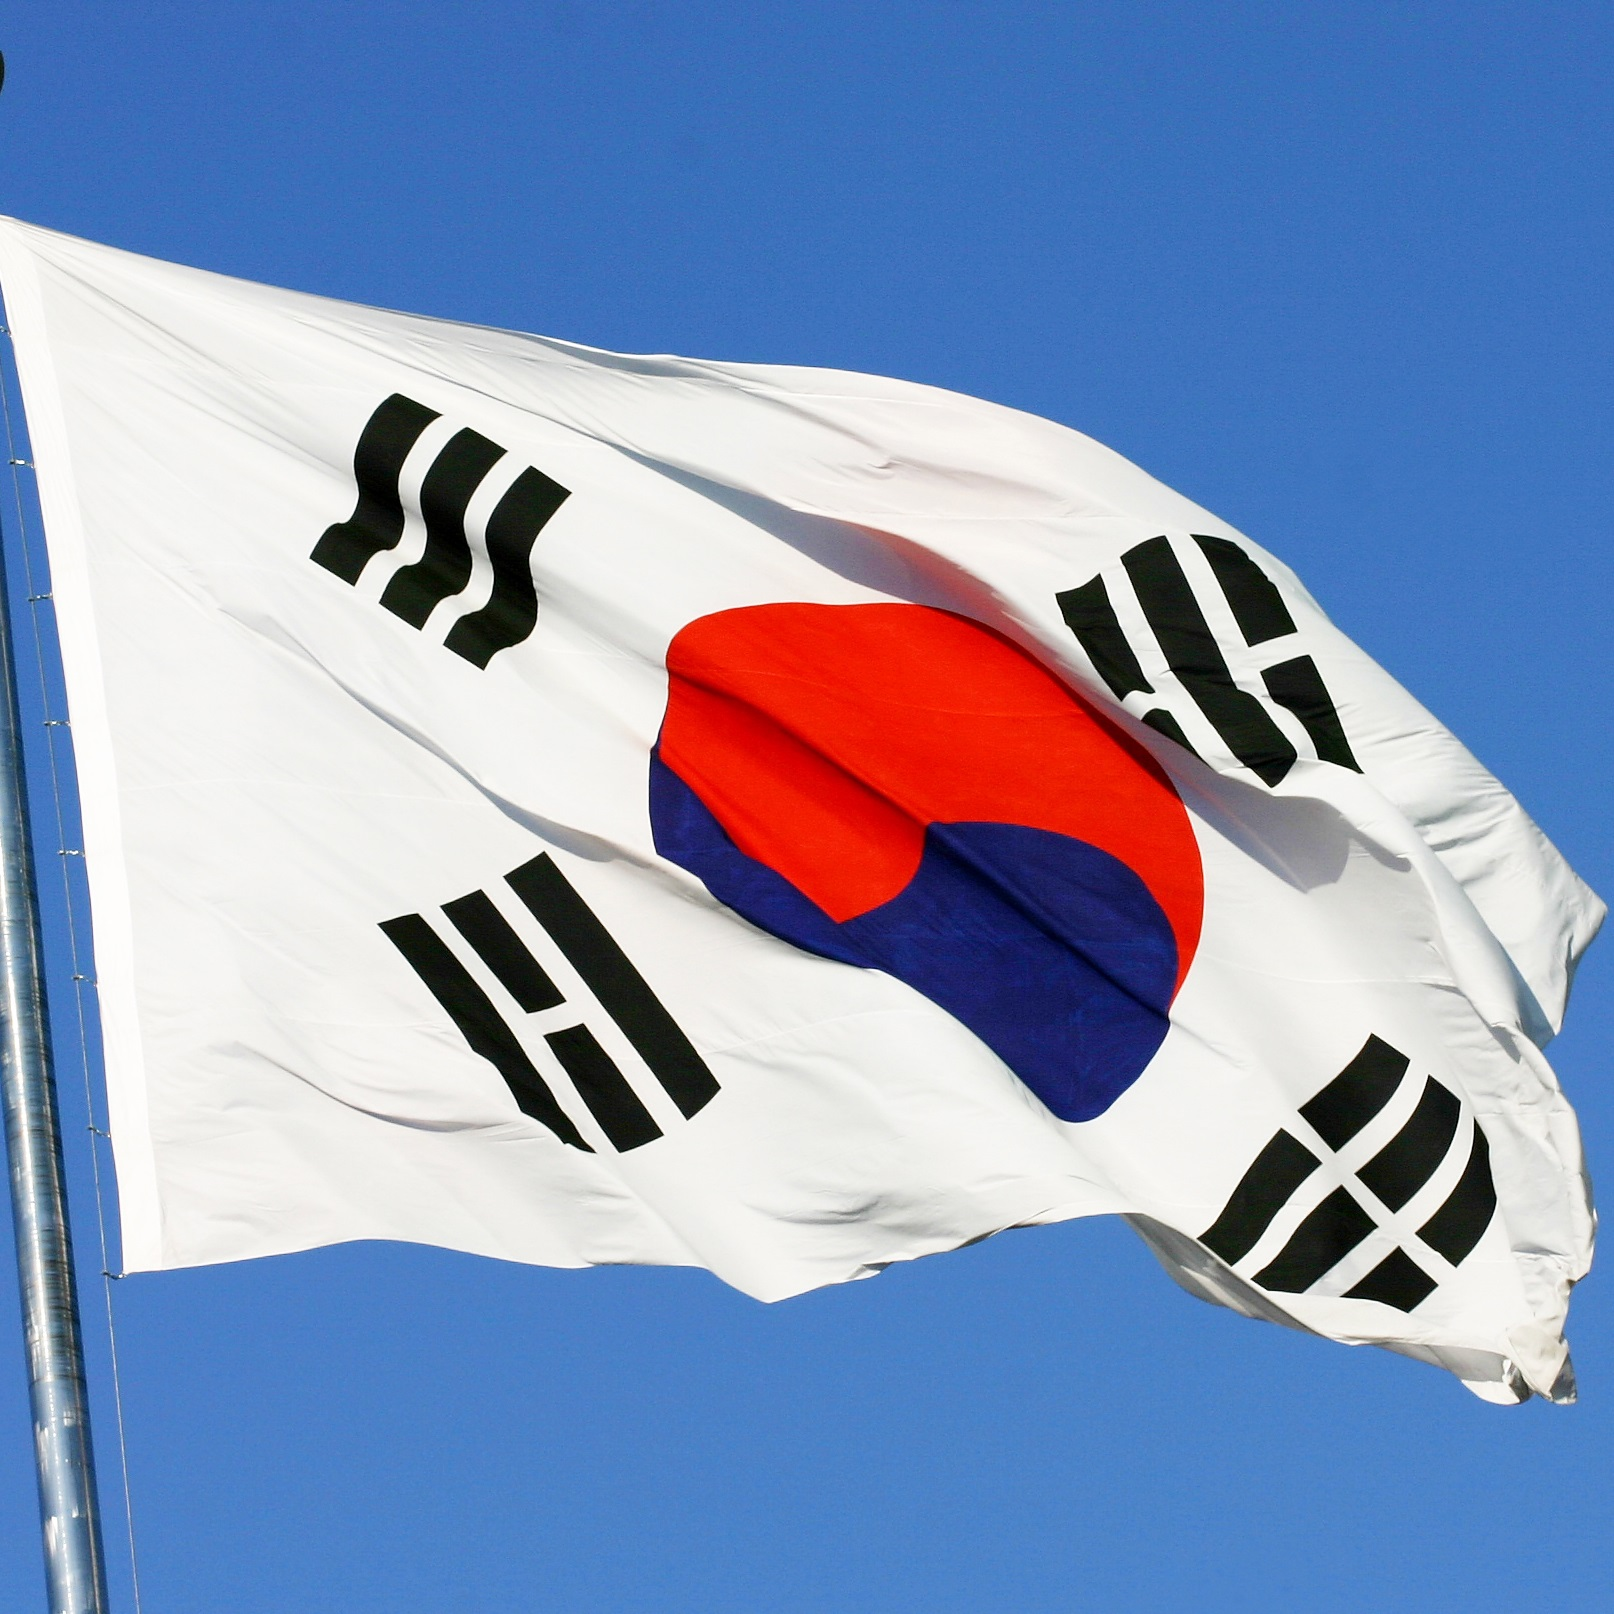 Apple, Google To Make App Refunds Easier In South Korea